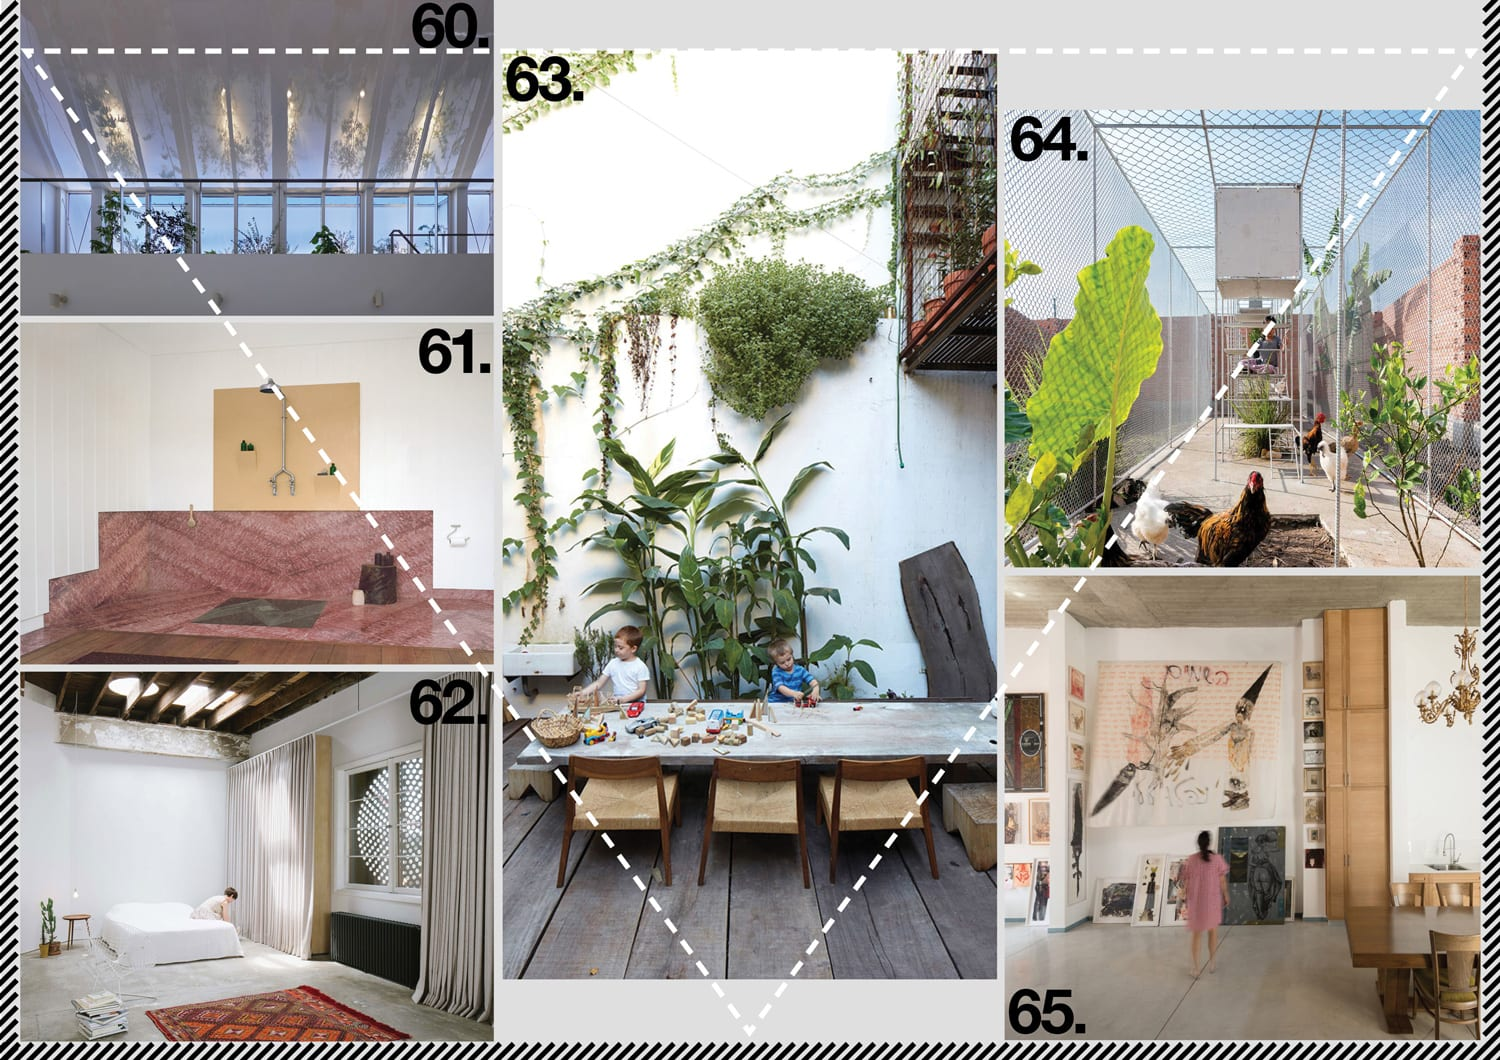 Residential Architecture Archive 2018 | Yellowtrace